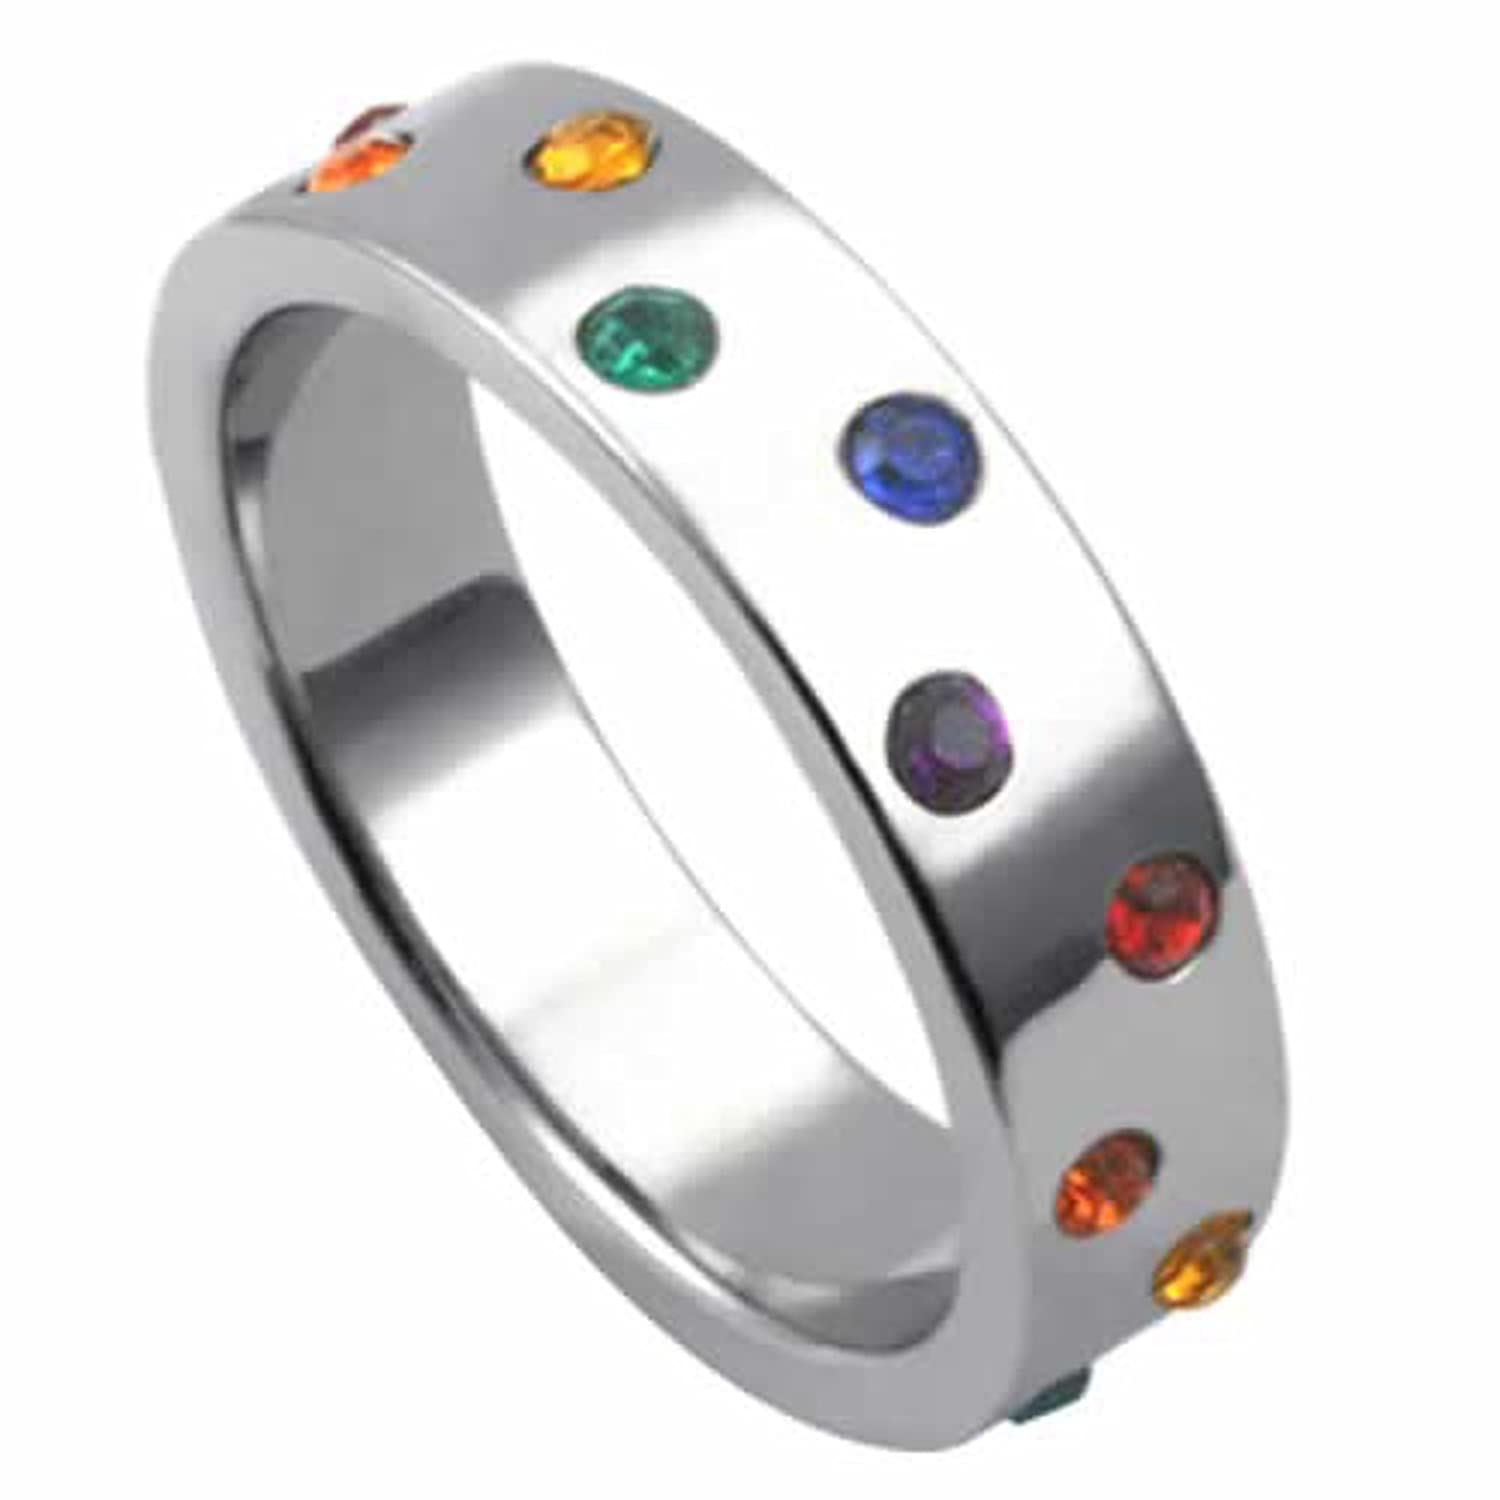 amazoncom gay pride ring with rainbow colored stones love ring couples ring gay pride wedding band wedding ring sets jewelry - Rainbow Wedding Rings